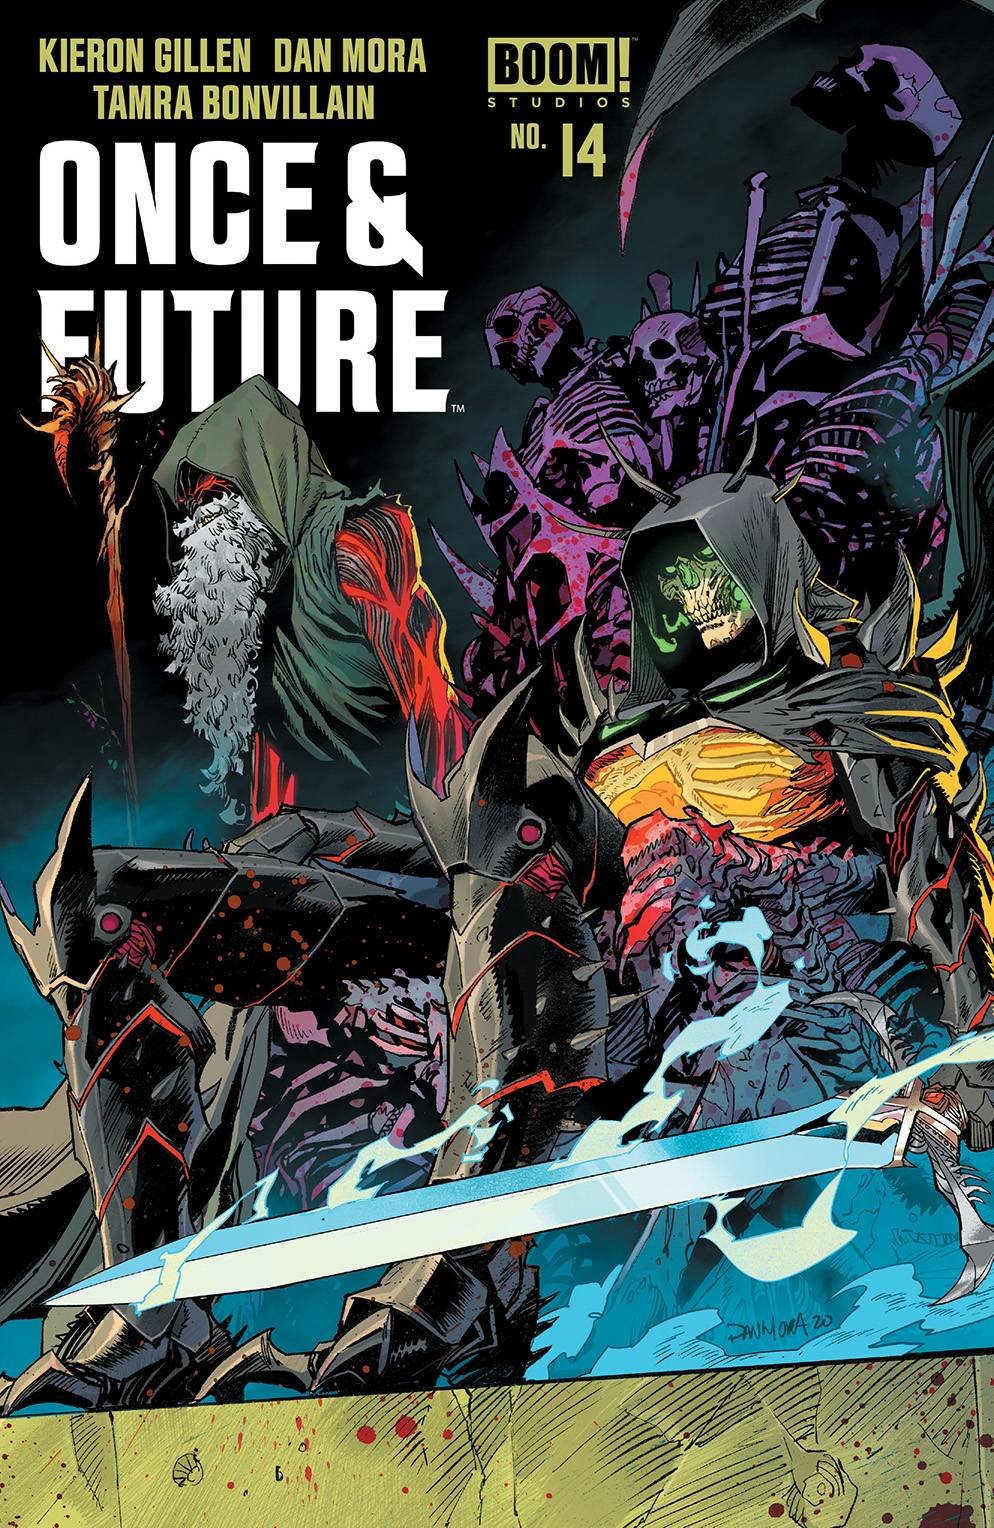 Once & Future #14 (2020)